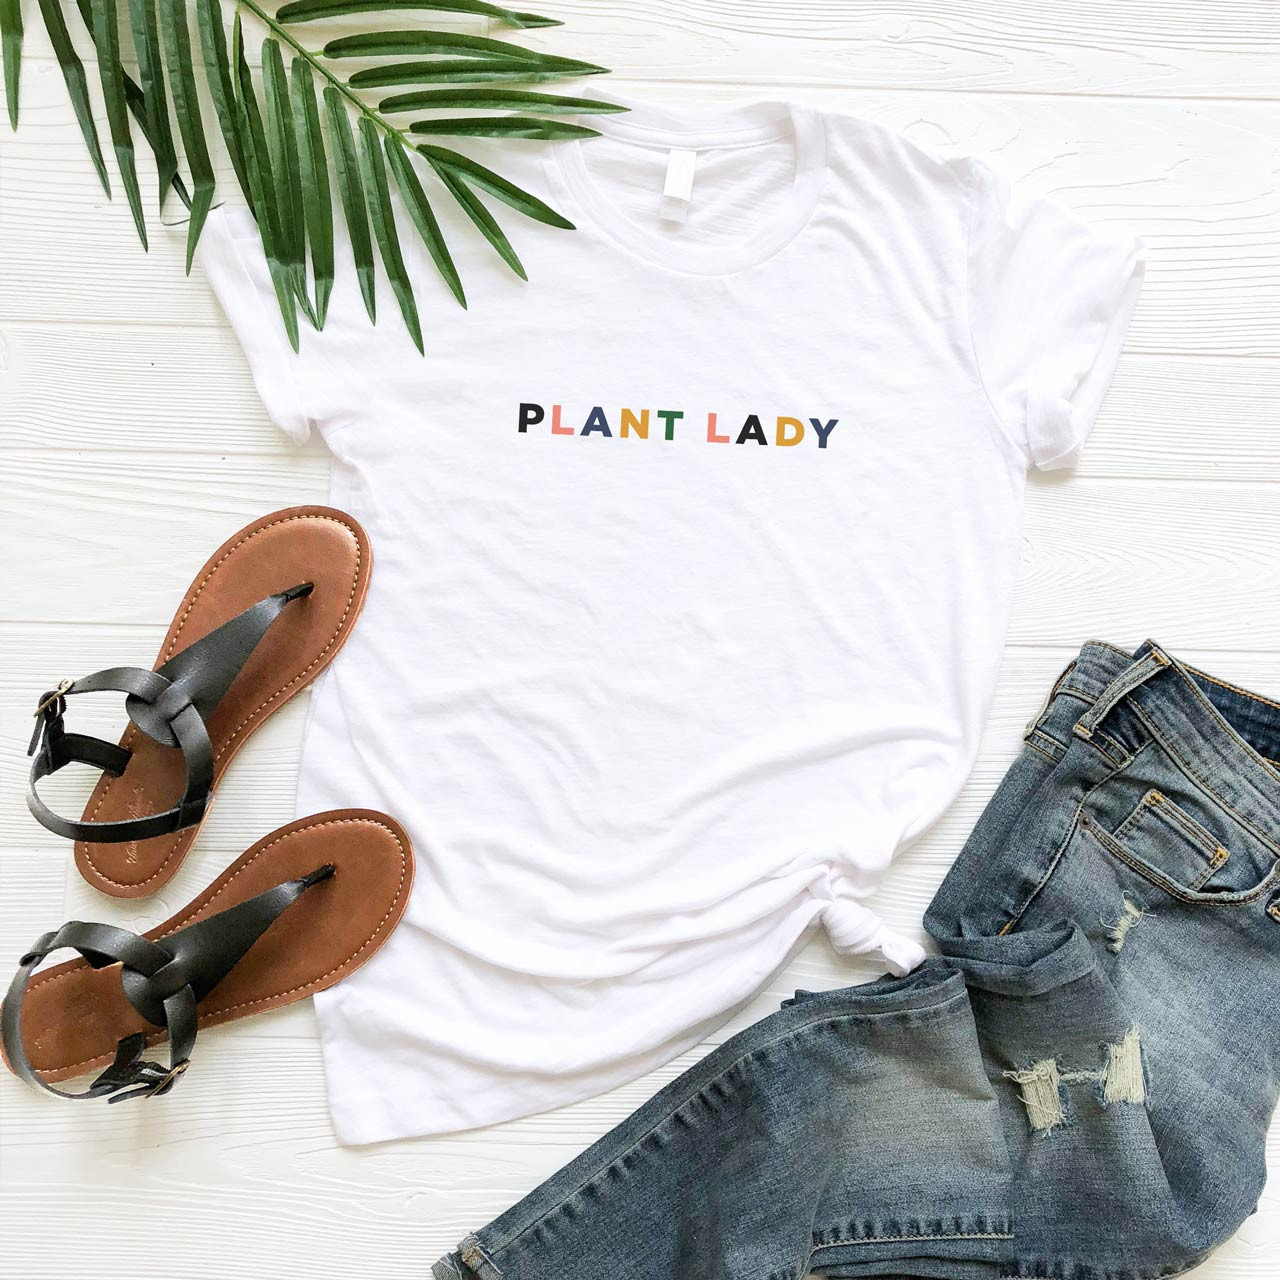 PLANT LADY Cotton T-Shirt (Color on White) from The Printed Home